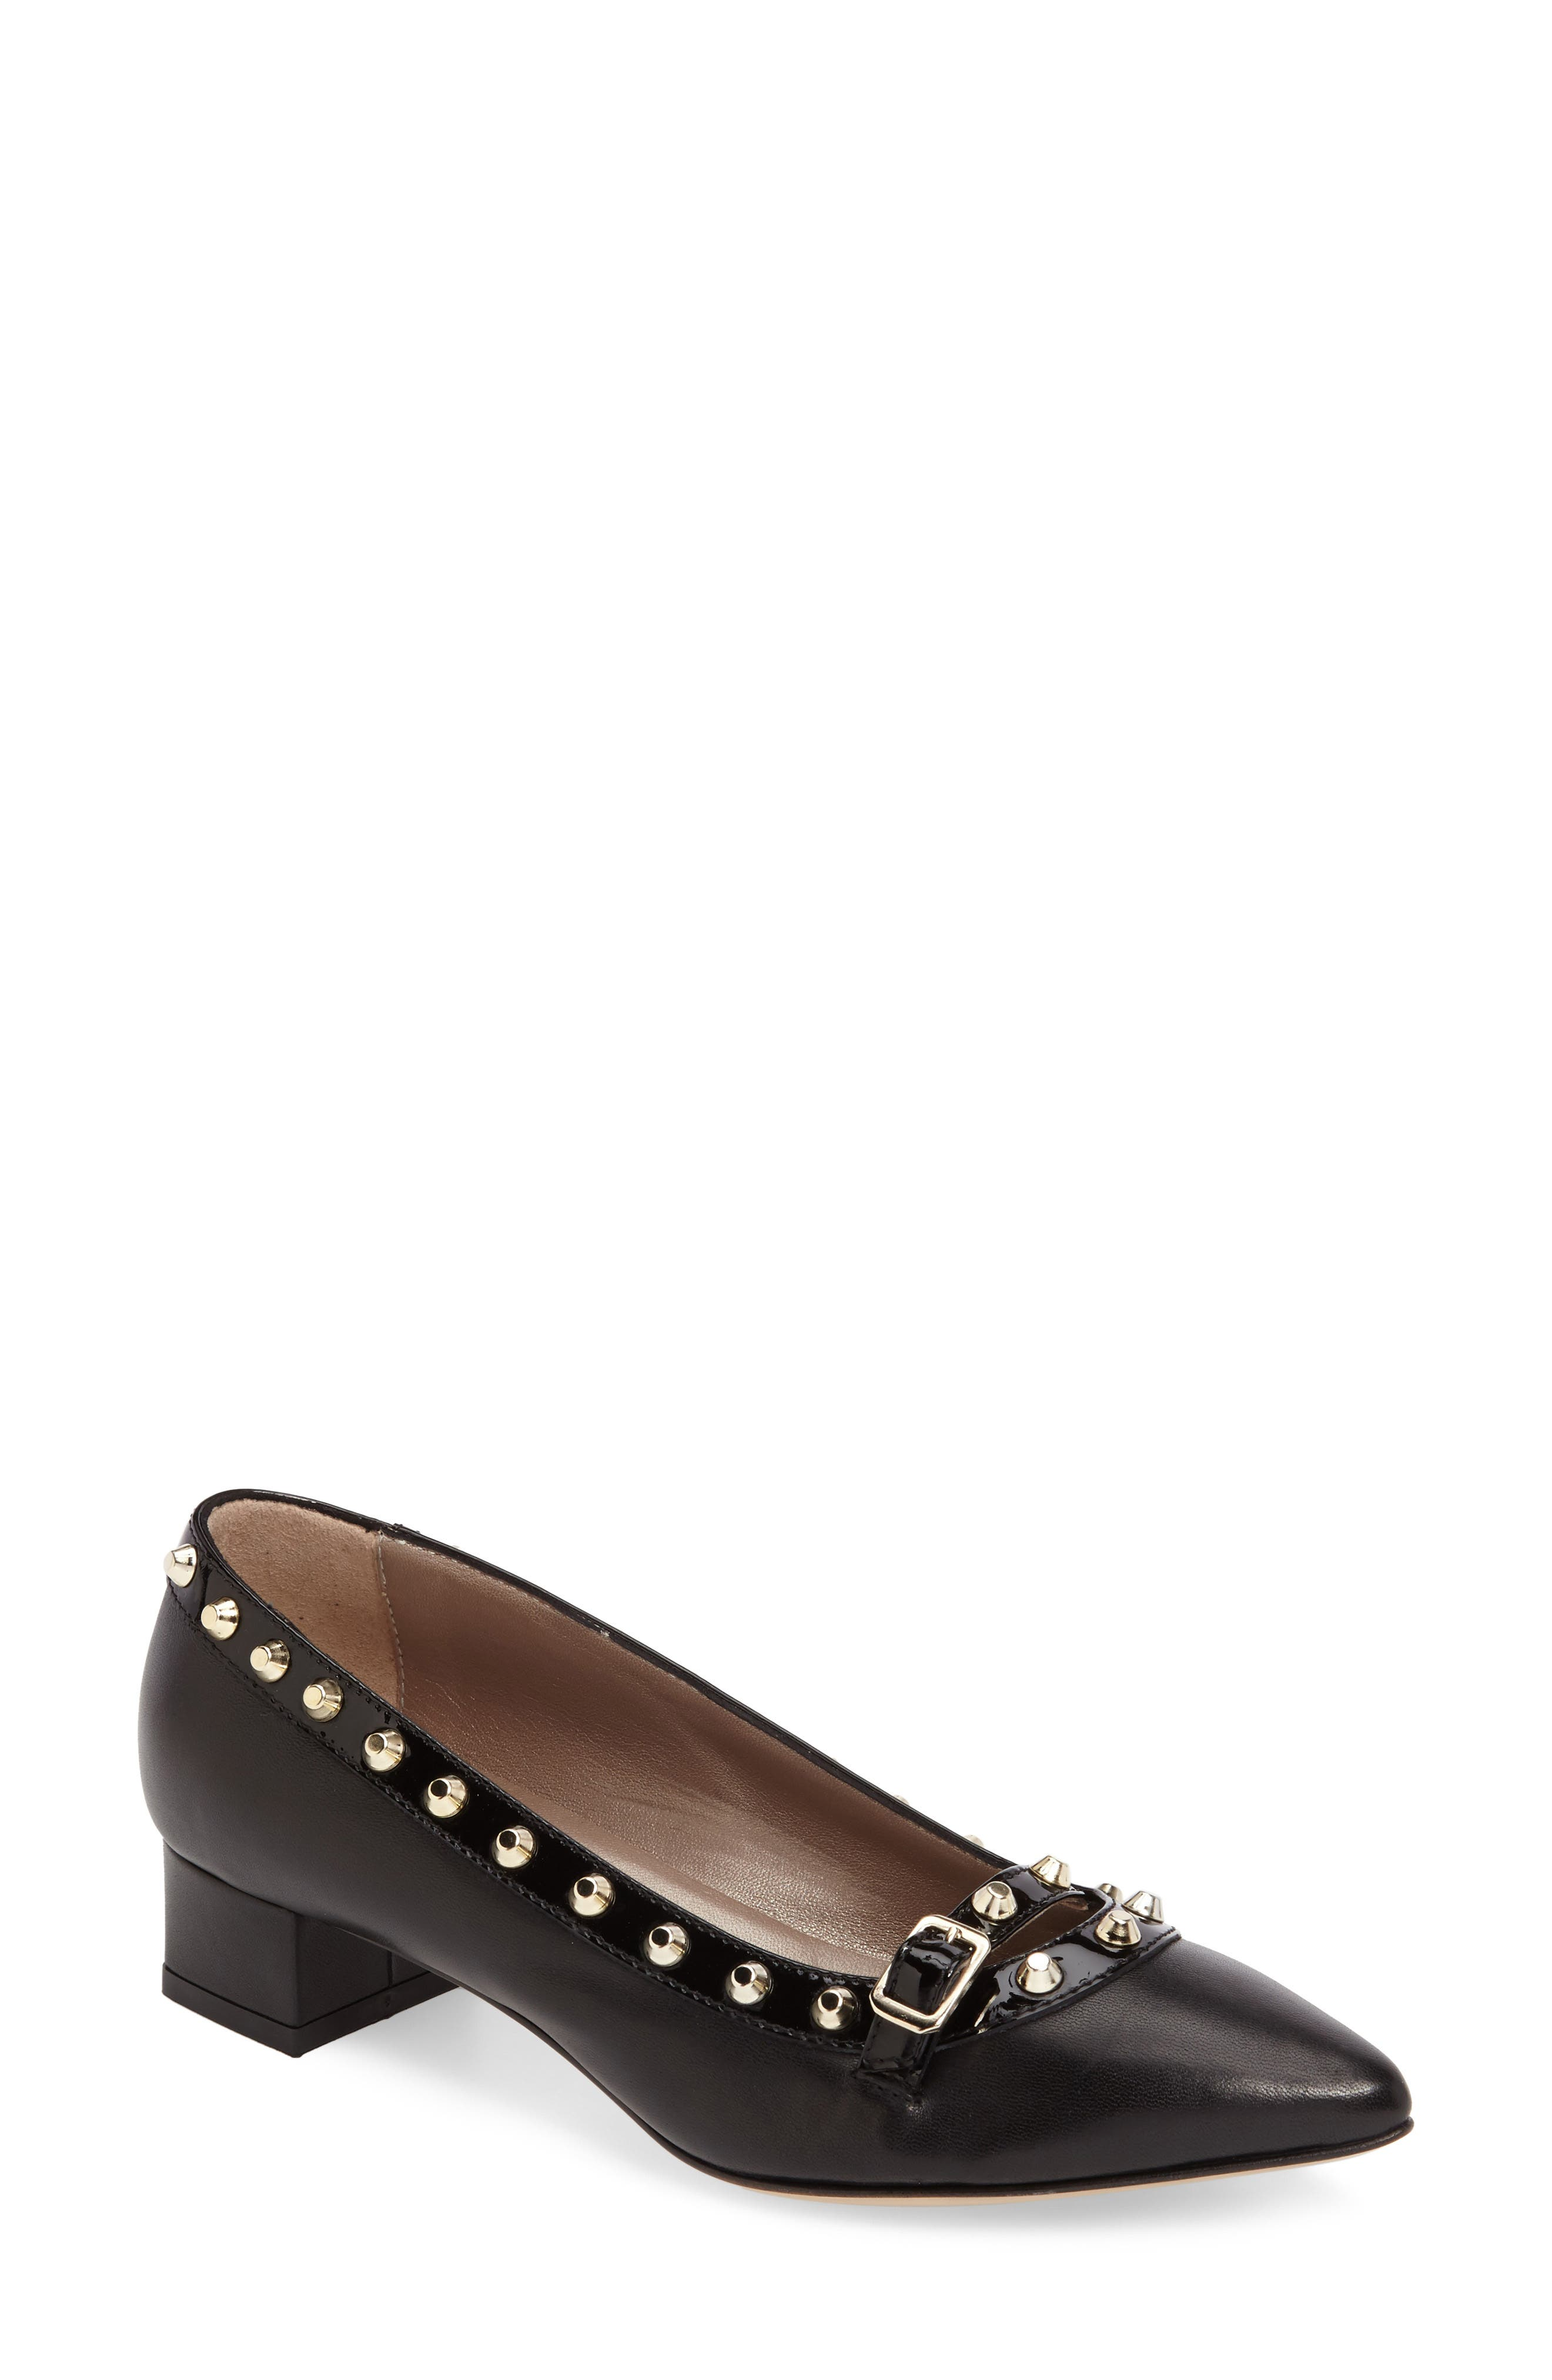 Studded Mary Jane Pump,                             Main thumbnail 1, color,                             Black Leather